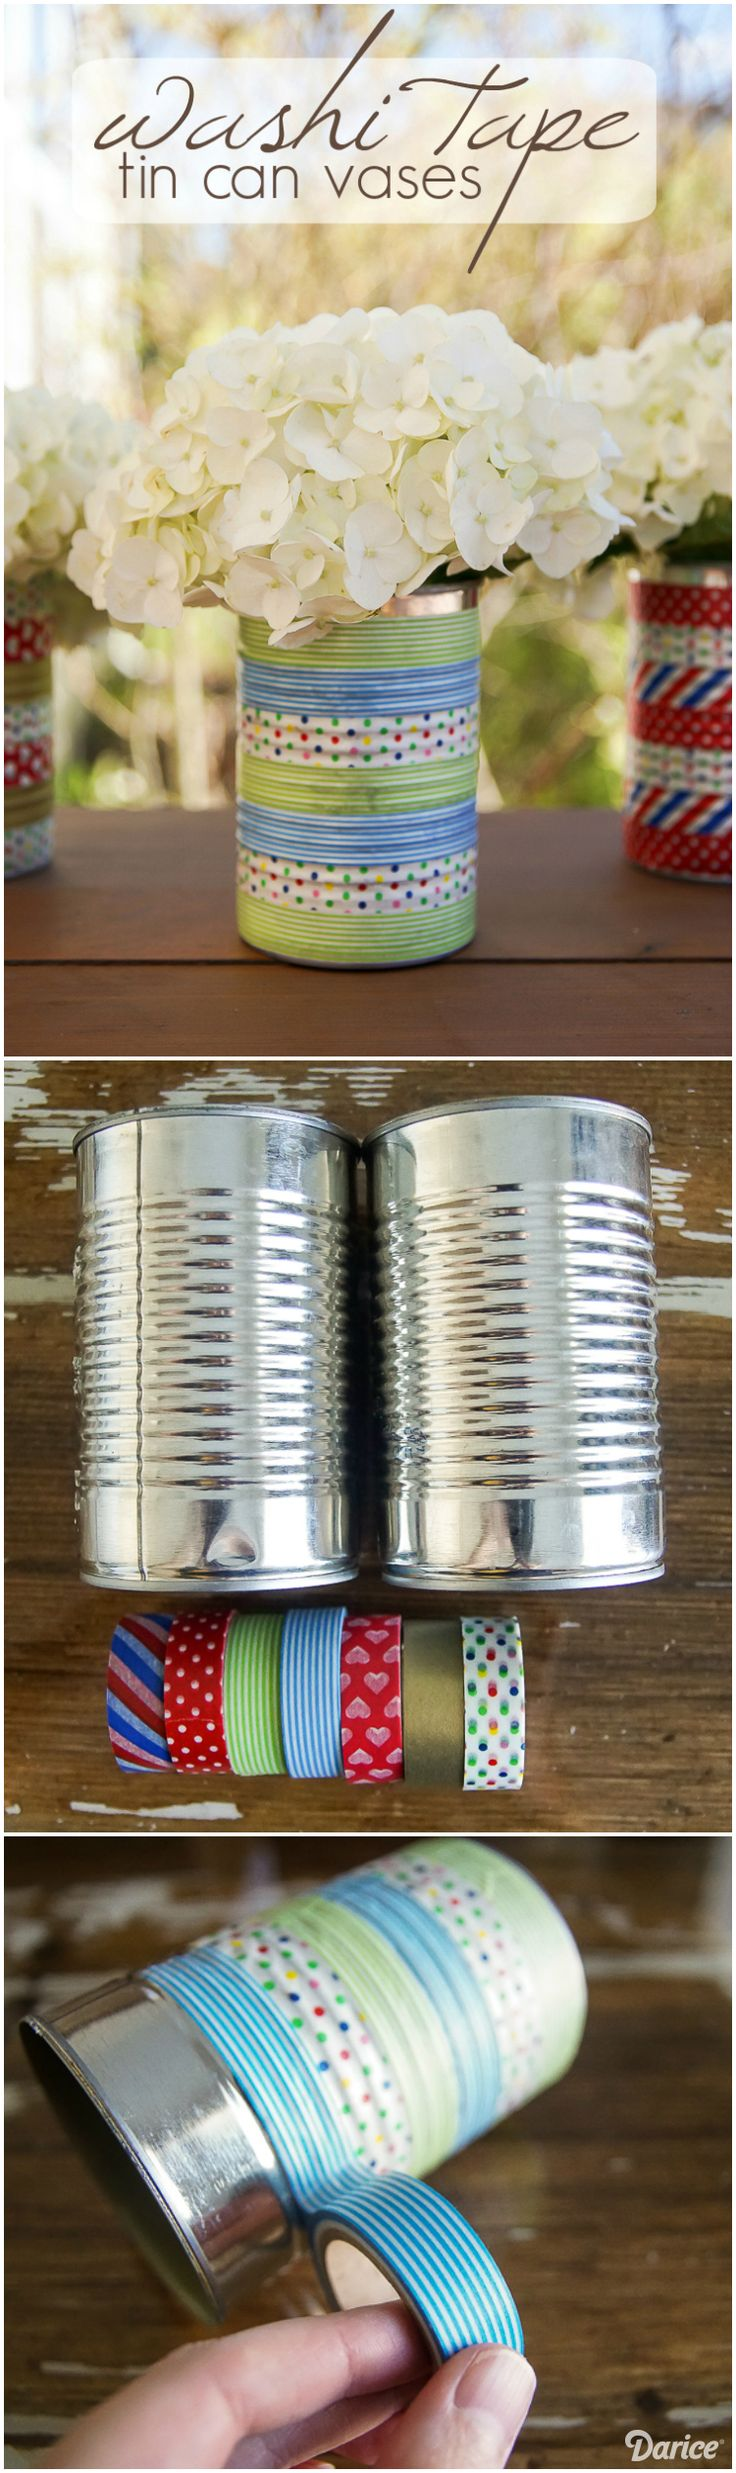 Check out this cheap and affordable way to turn used cans into beautiful washi tape tin can craft vases in only a few minutes and with a few supplies!